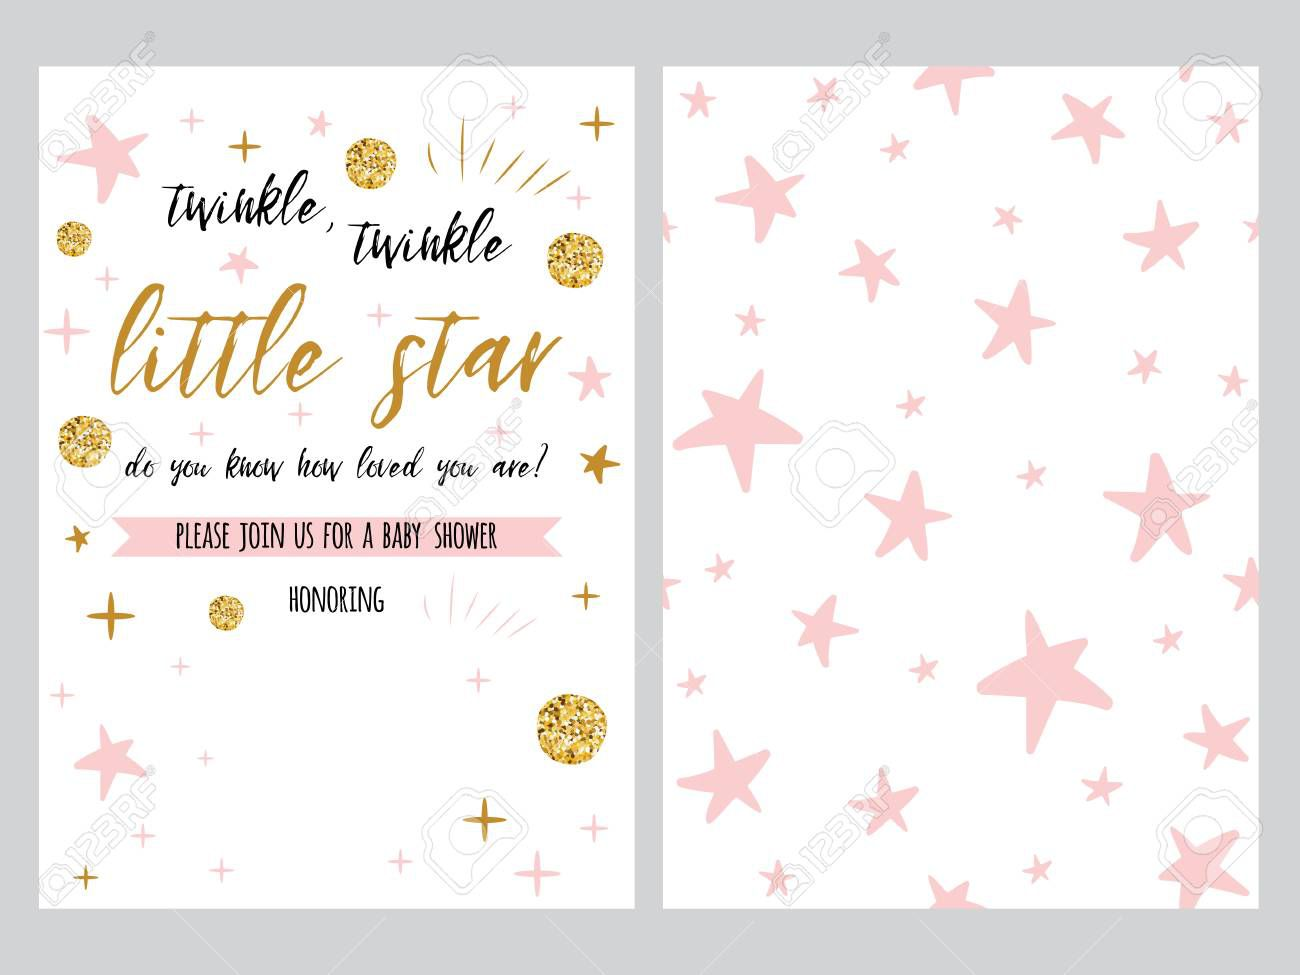 001 Dreaded Free Baby Shower Invitation Template High Definition  Printable Editable Microsoft Word To PrintFull